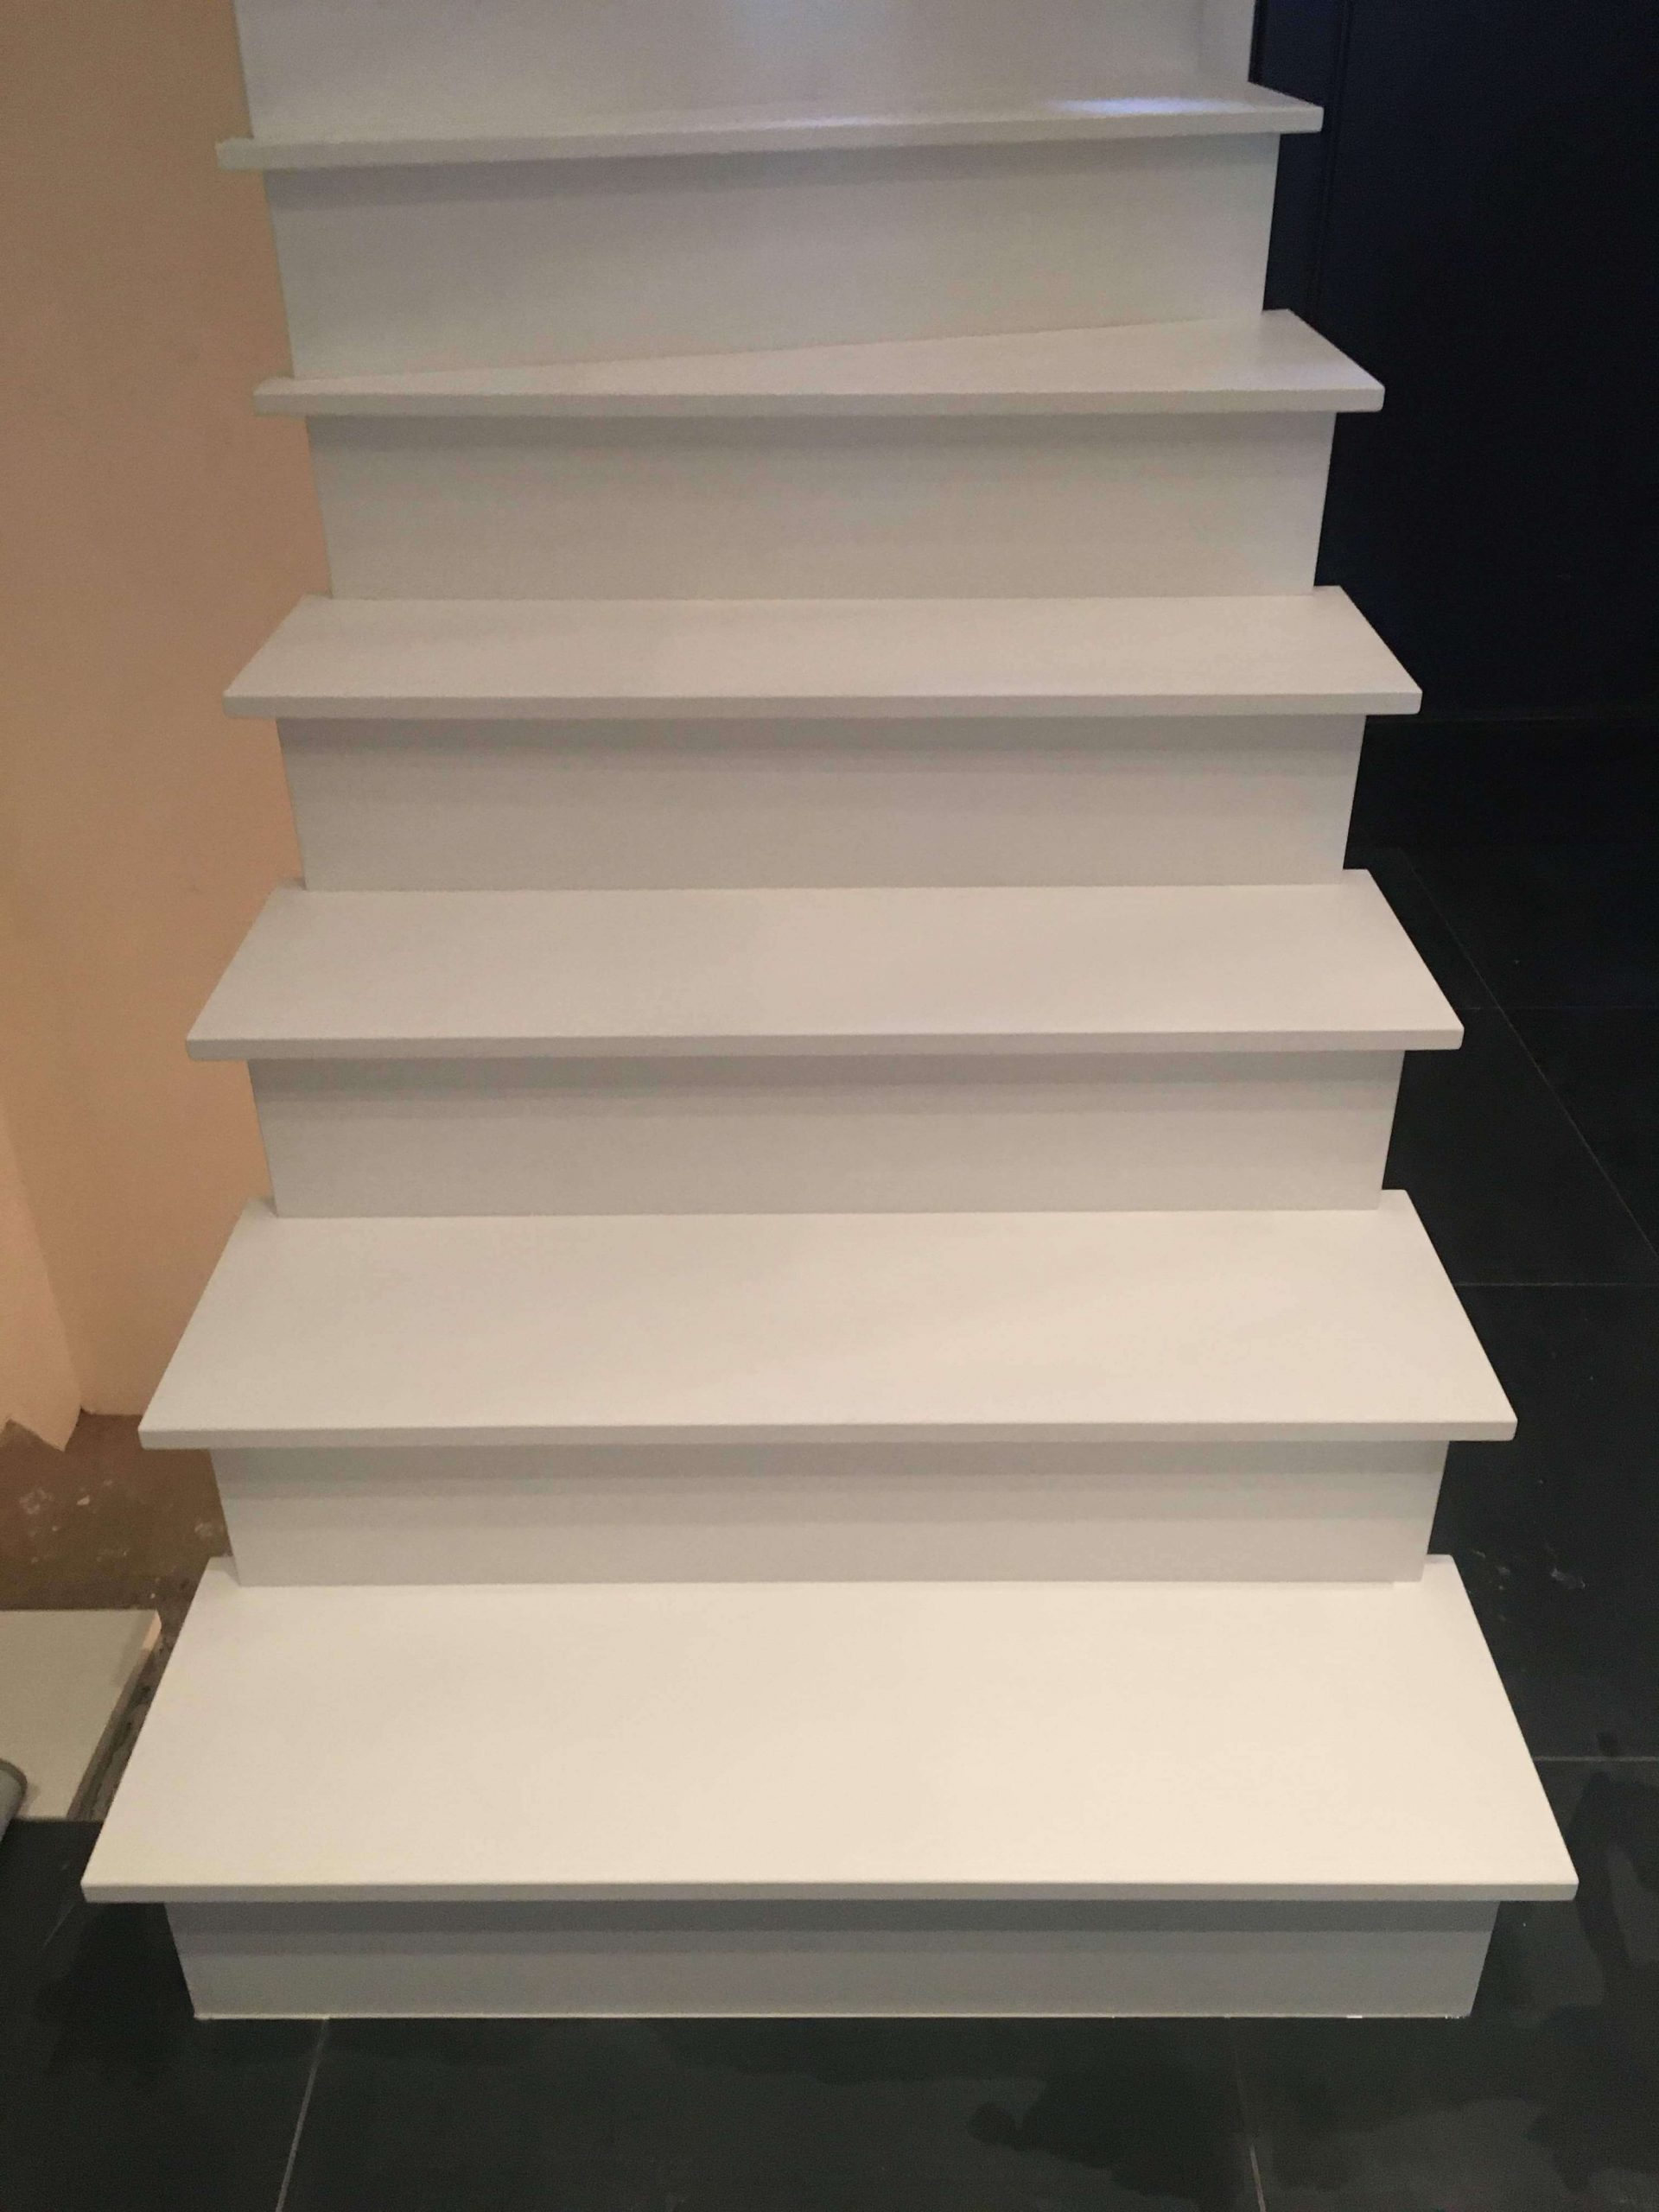 white-stairs-vertical-fgmsprl-frameries